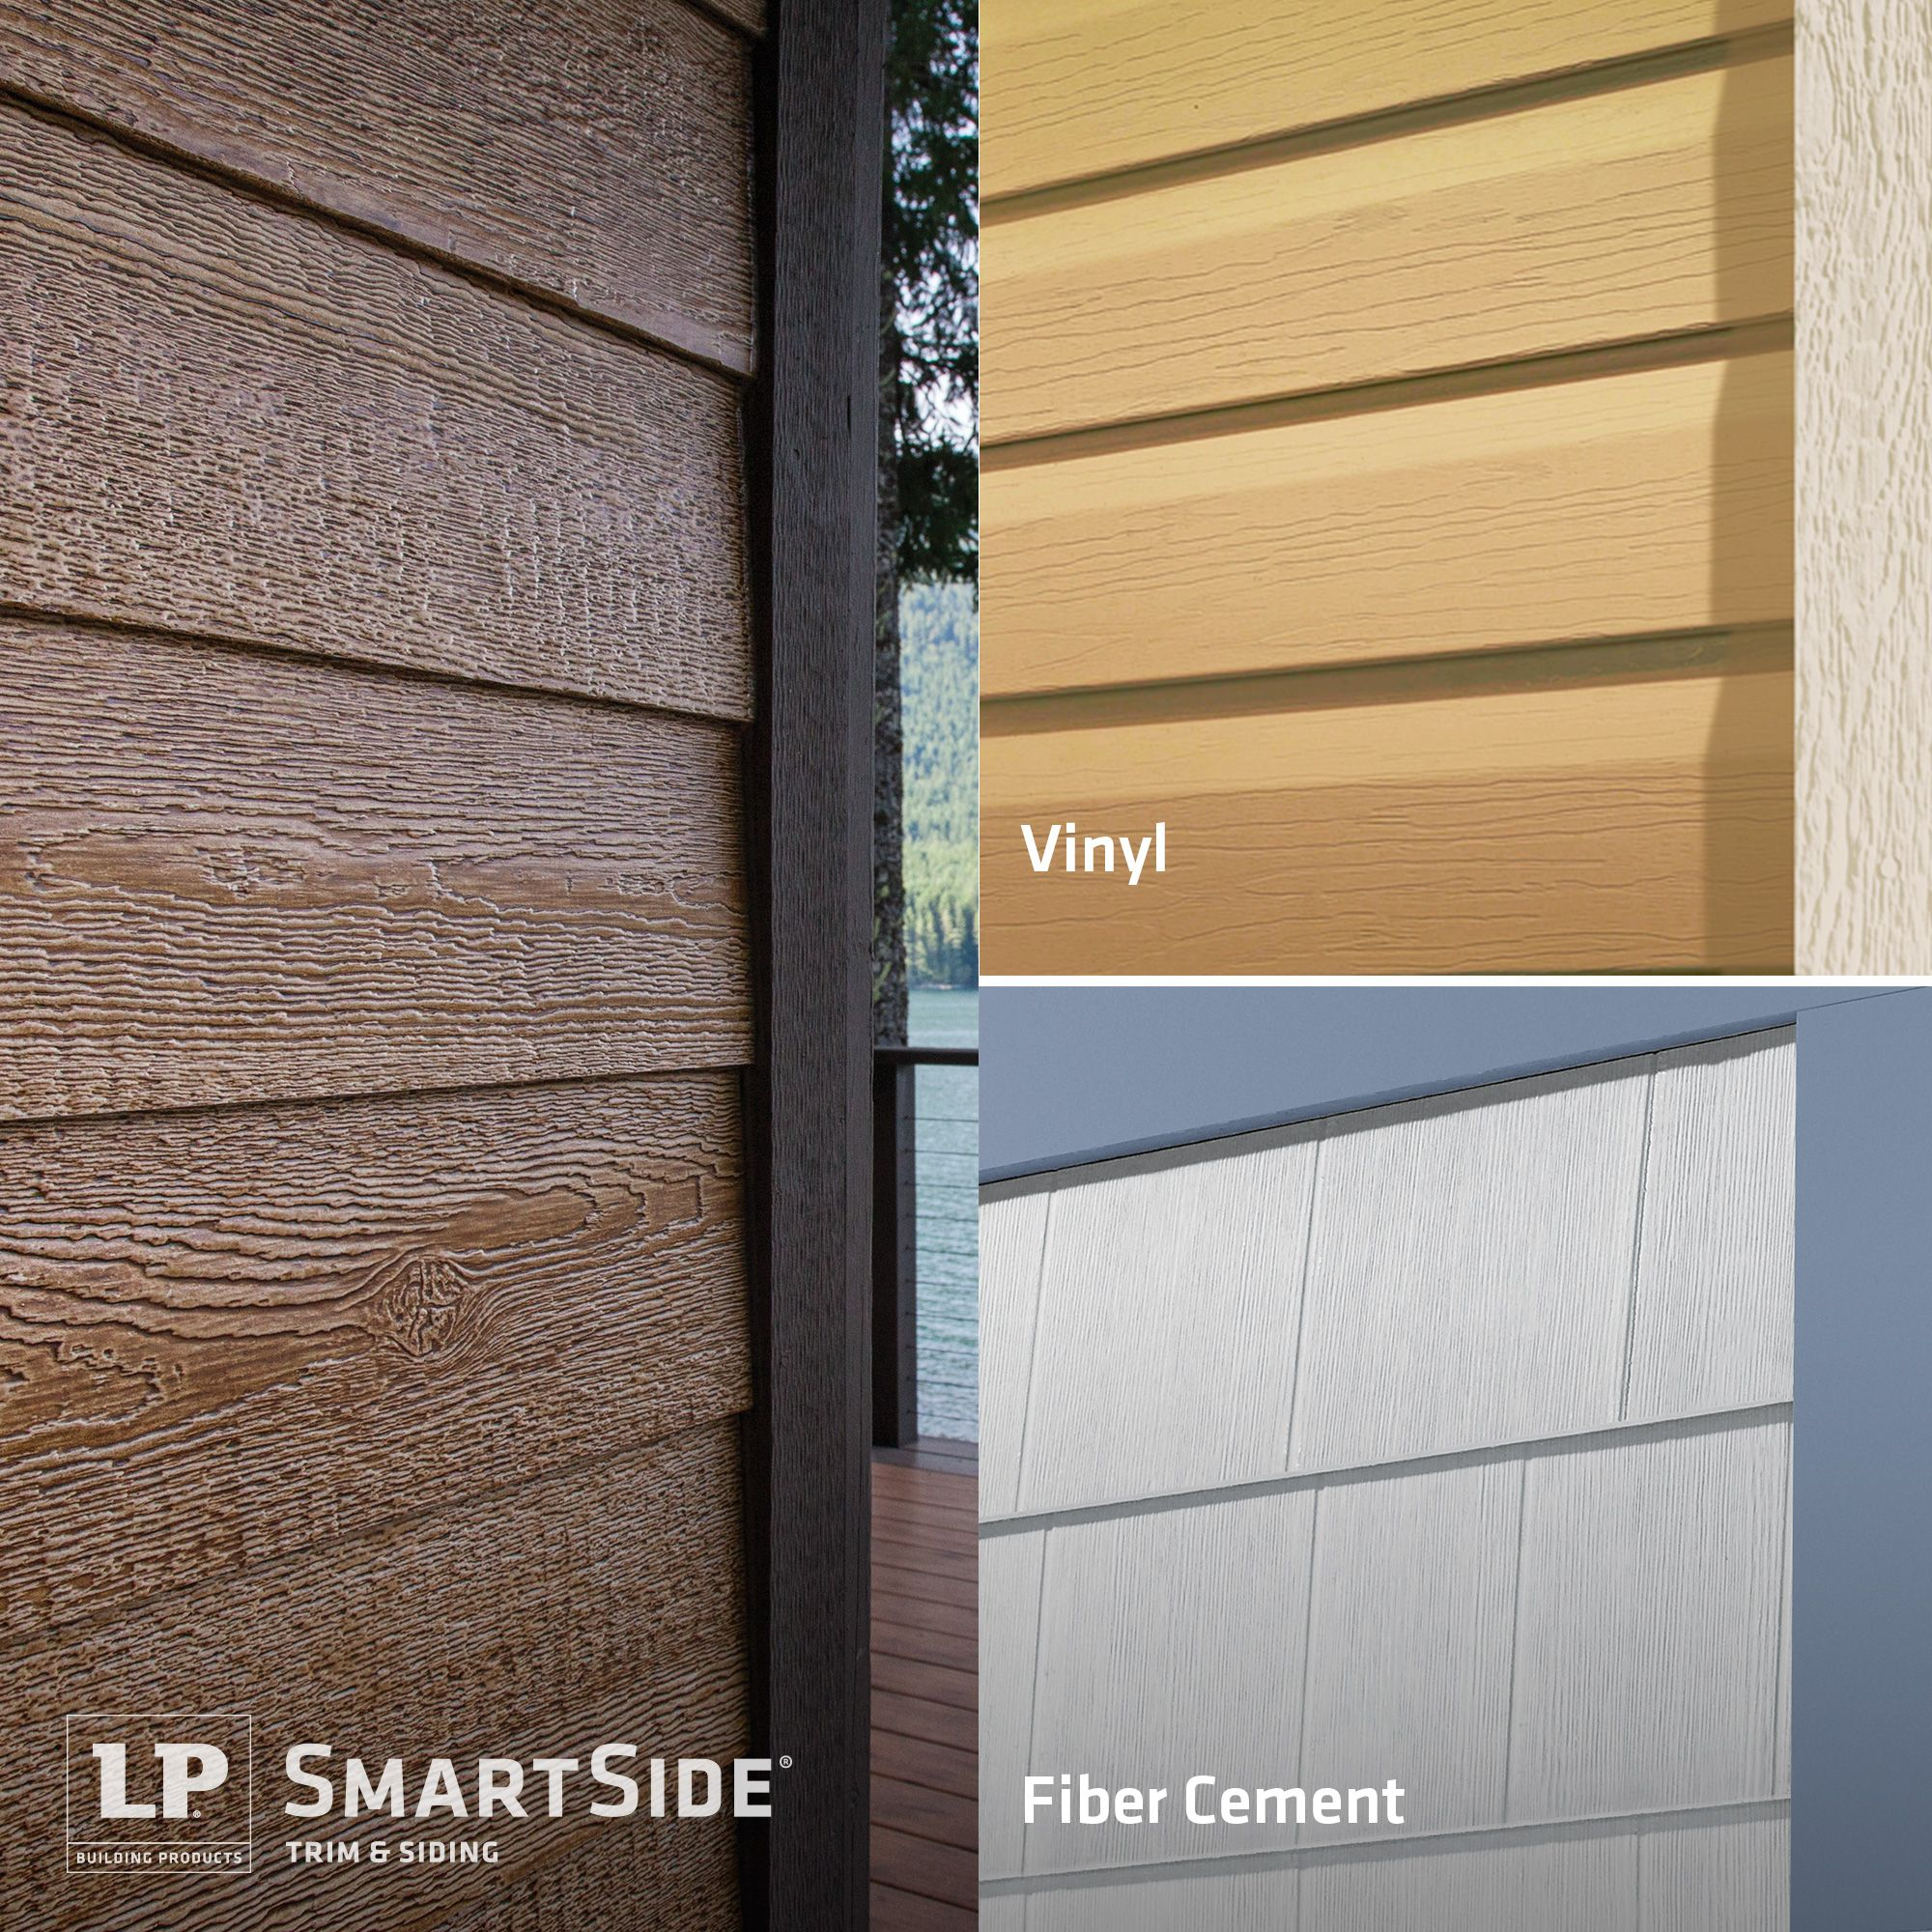 Dare to compare the true beauty and warm appeal of lp for Engineered wood siding vs fiber cement